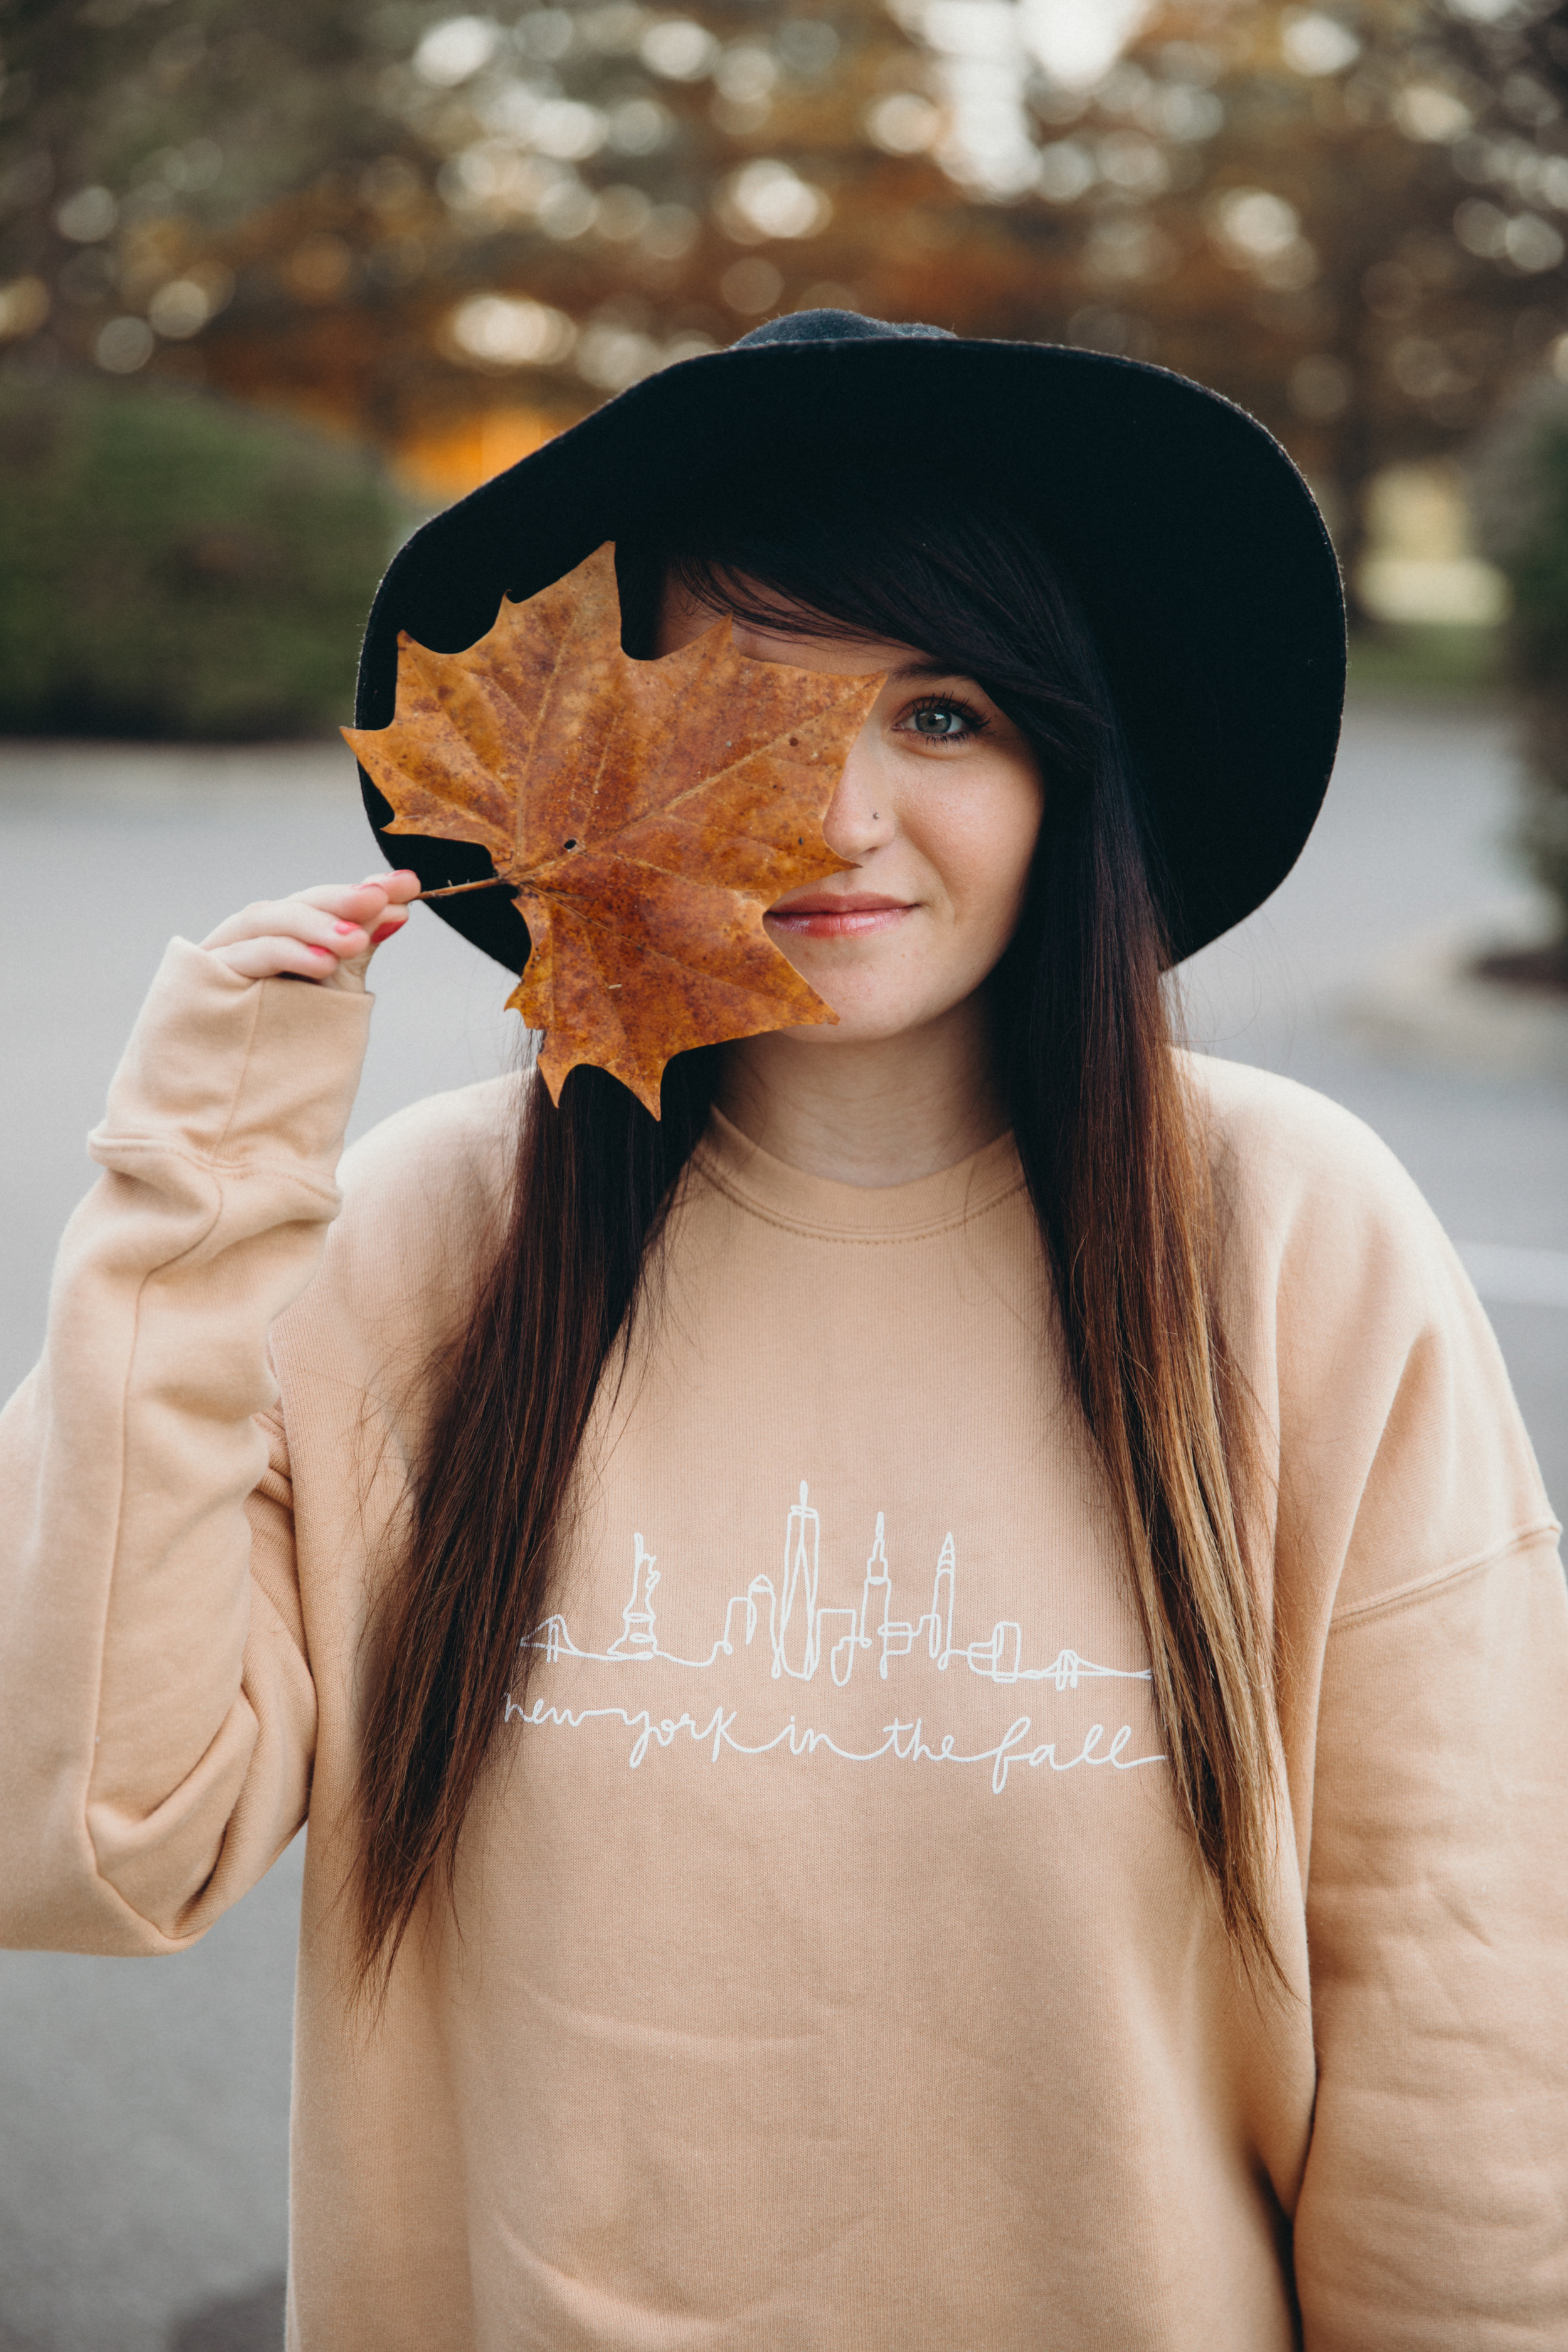 New York In The Fall You've Got Mail Sweatshirt Chelcey Tate x The Cake Shop www.chelceytate.com